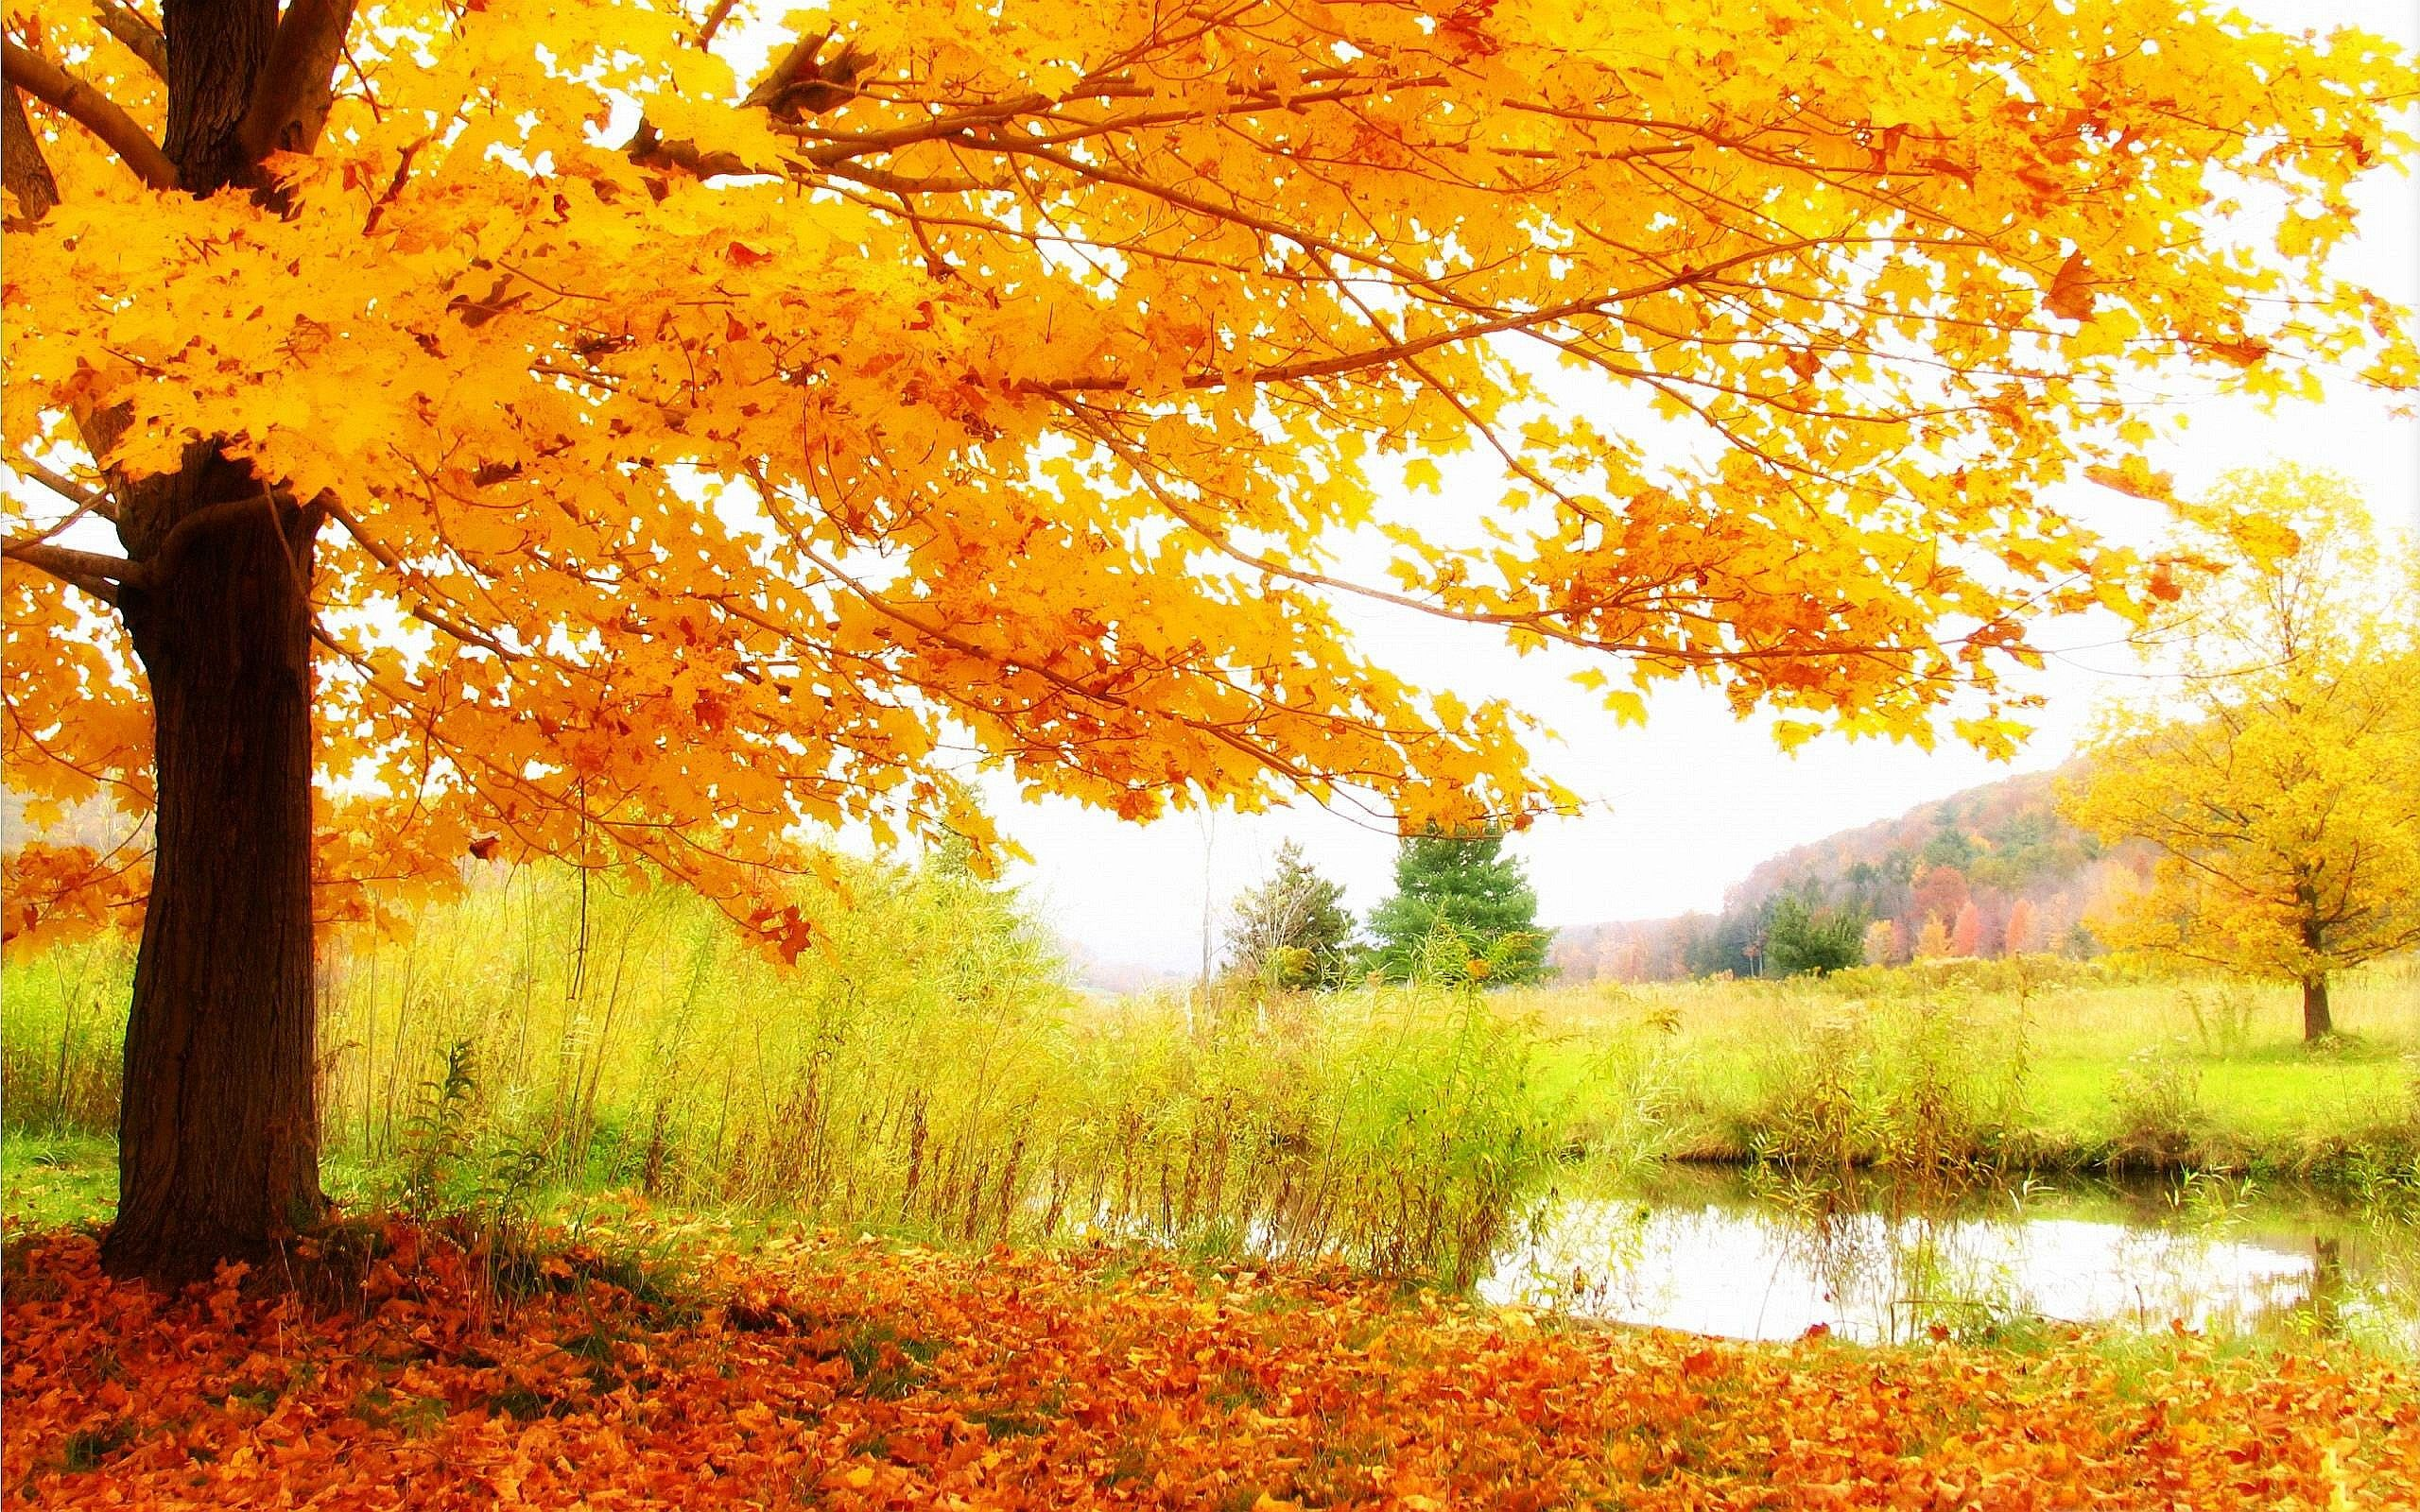 Hd wallpaper scenery - Autumn Scenery Wallpapers Pictures Photos Images Download High